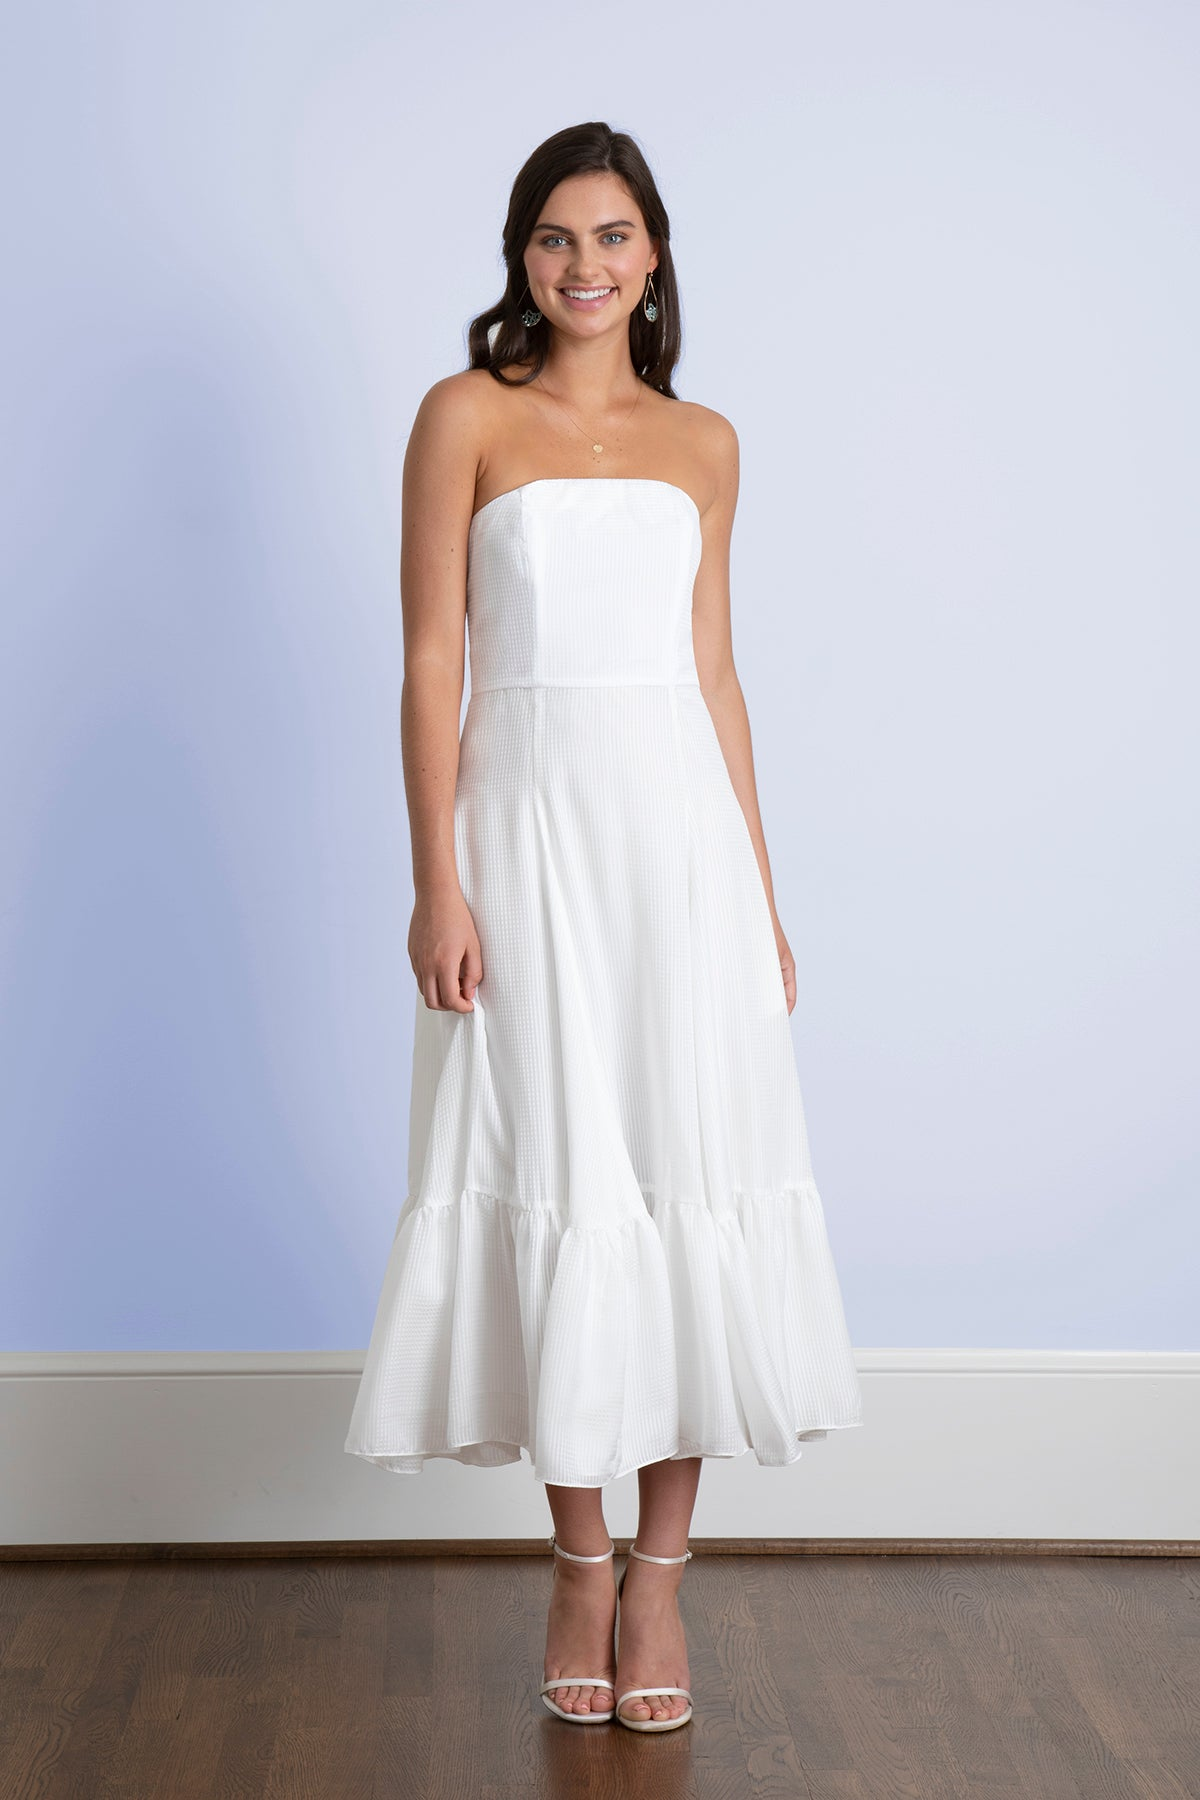 Ivie White Strapless Tea Length Rustic Romantic Outdoor Wedding Dress Jane Summers